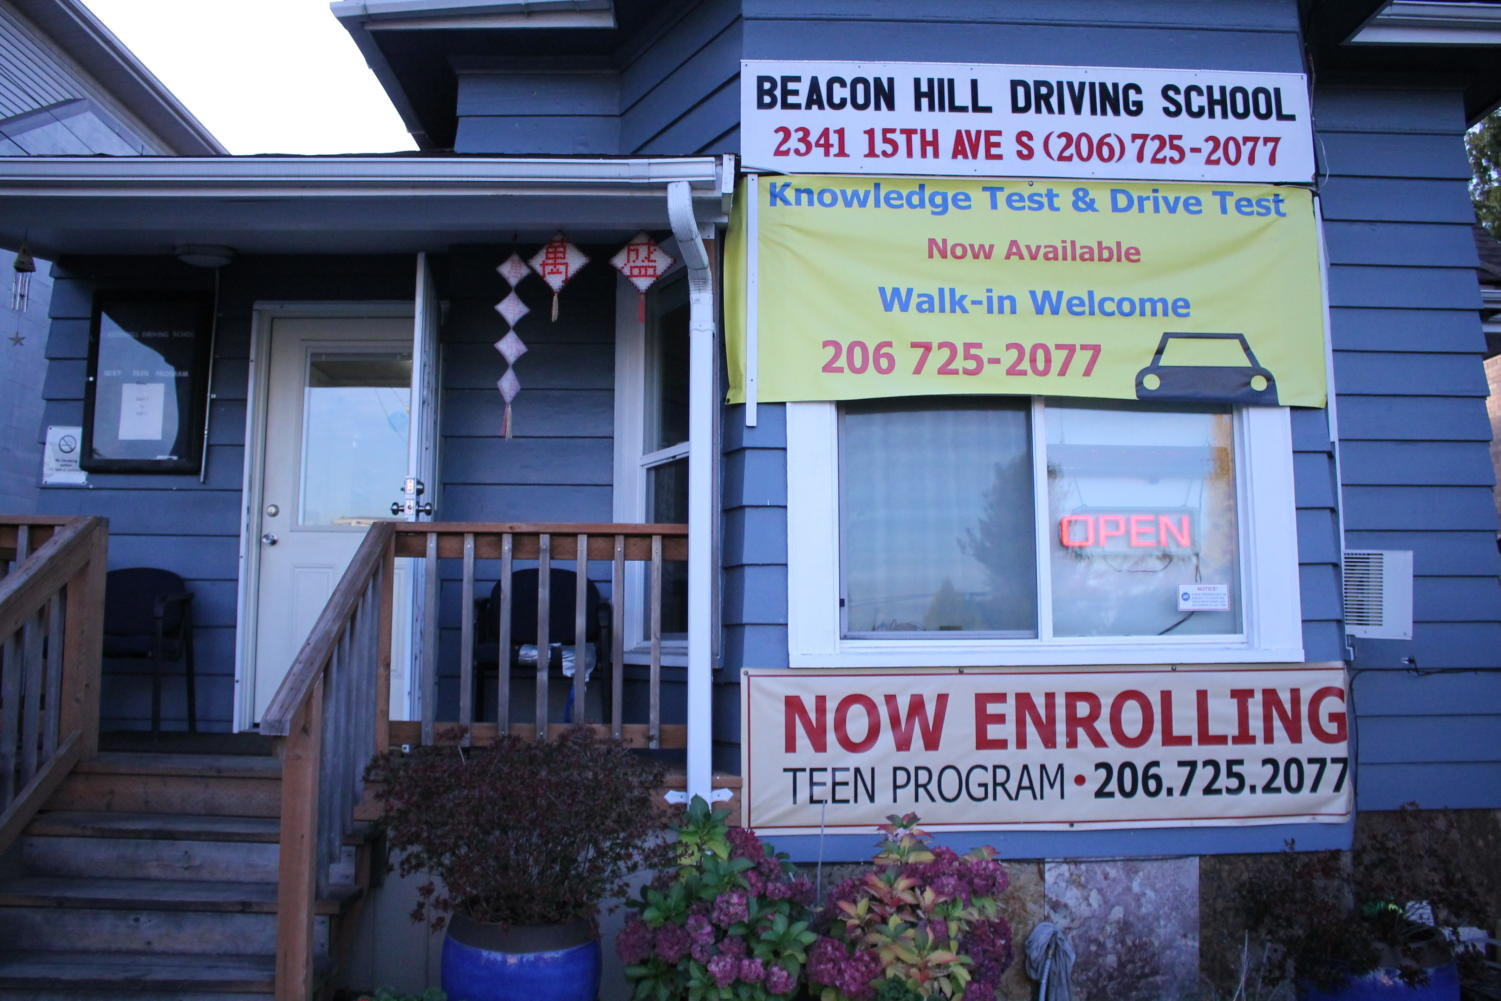 Beacon Hill Driving School offers parents peace of mind and students a chance to learn to drive without the pressure of parental eyes watching. Their teen driving program costs $480.